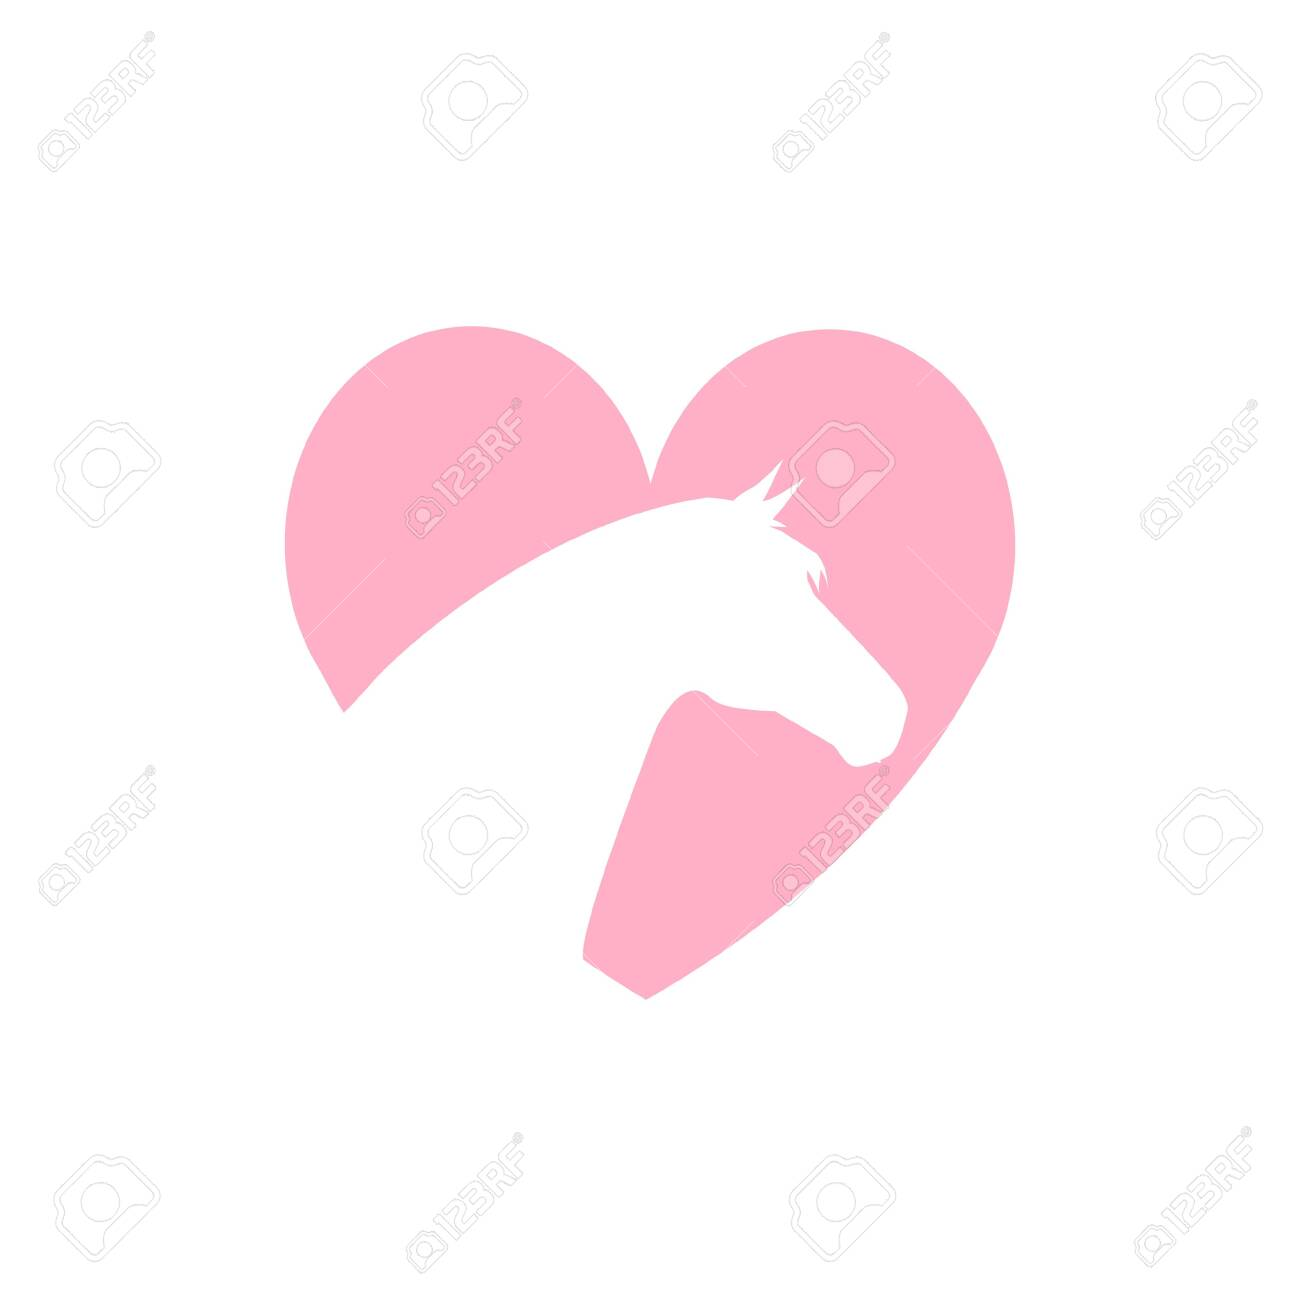 Vector Flat Pink Horse Head In Heart Logo Isolated On White Background Royalty Free Cliparts Vectors And Stock Illustration Image 137253635